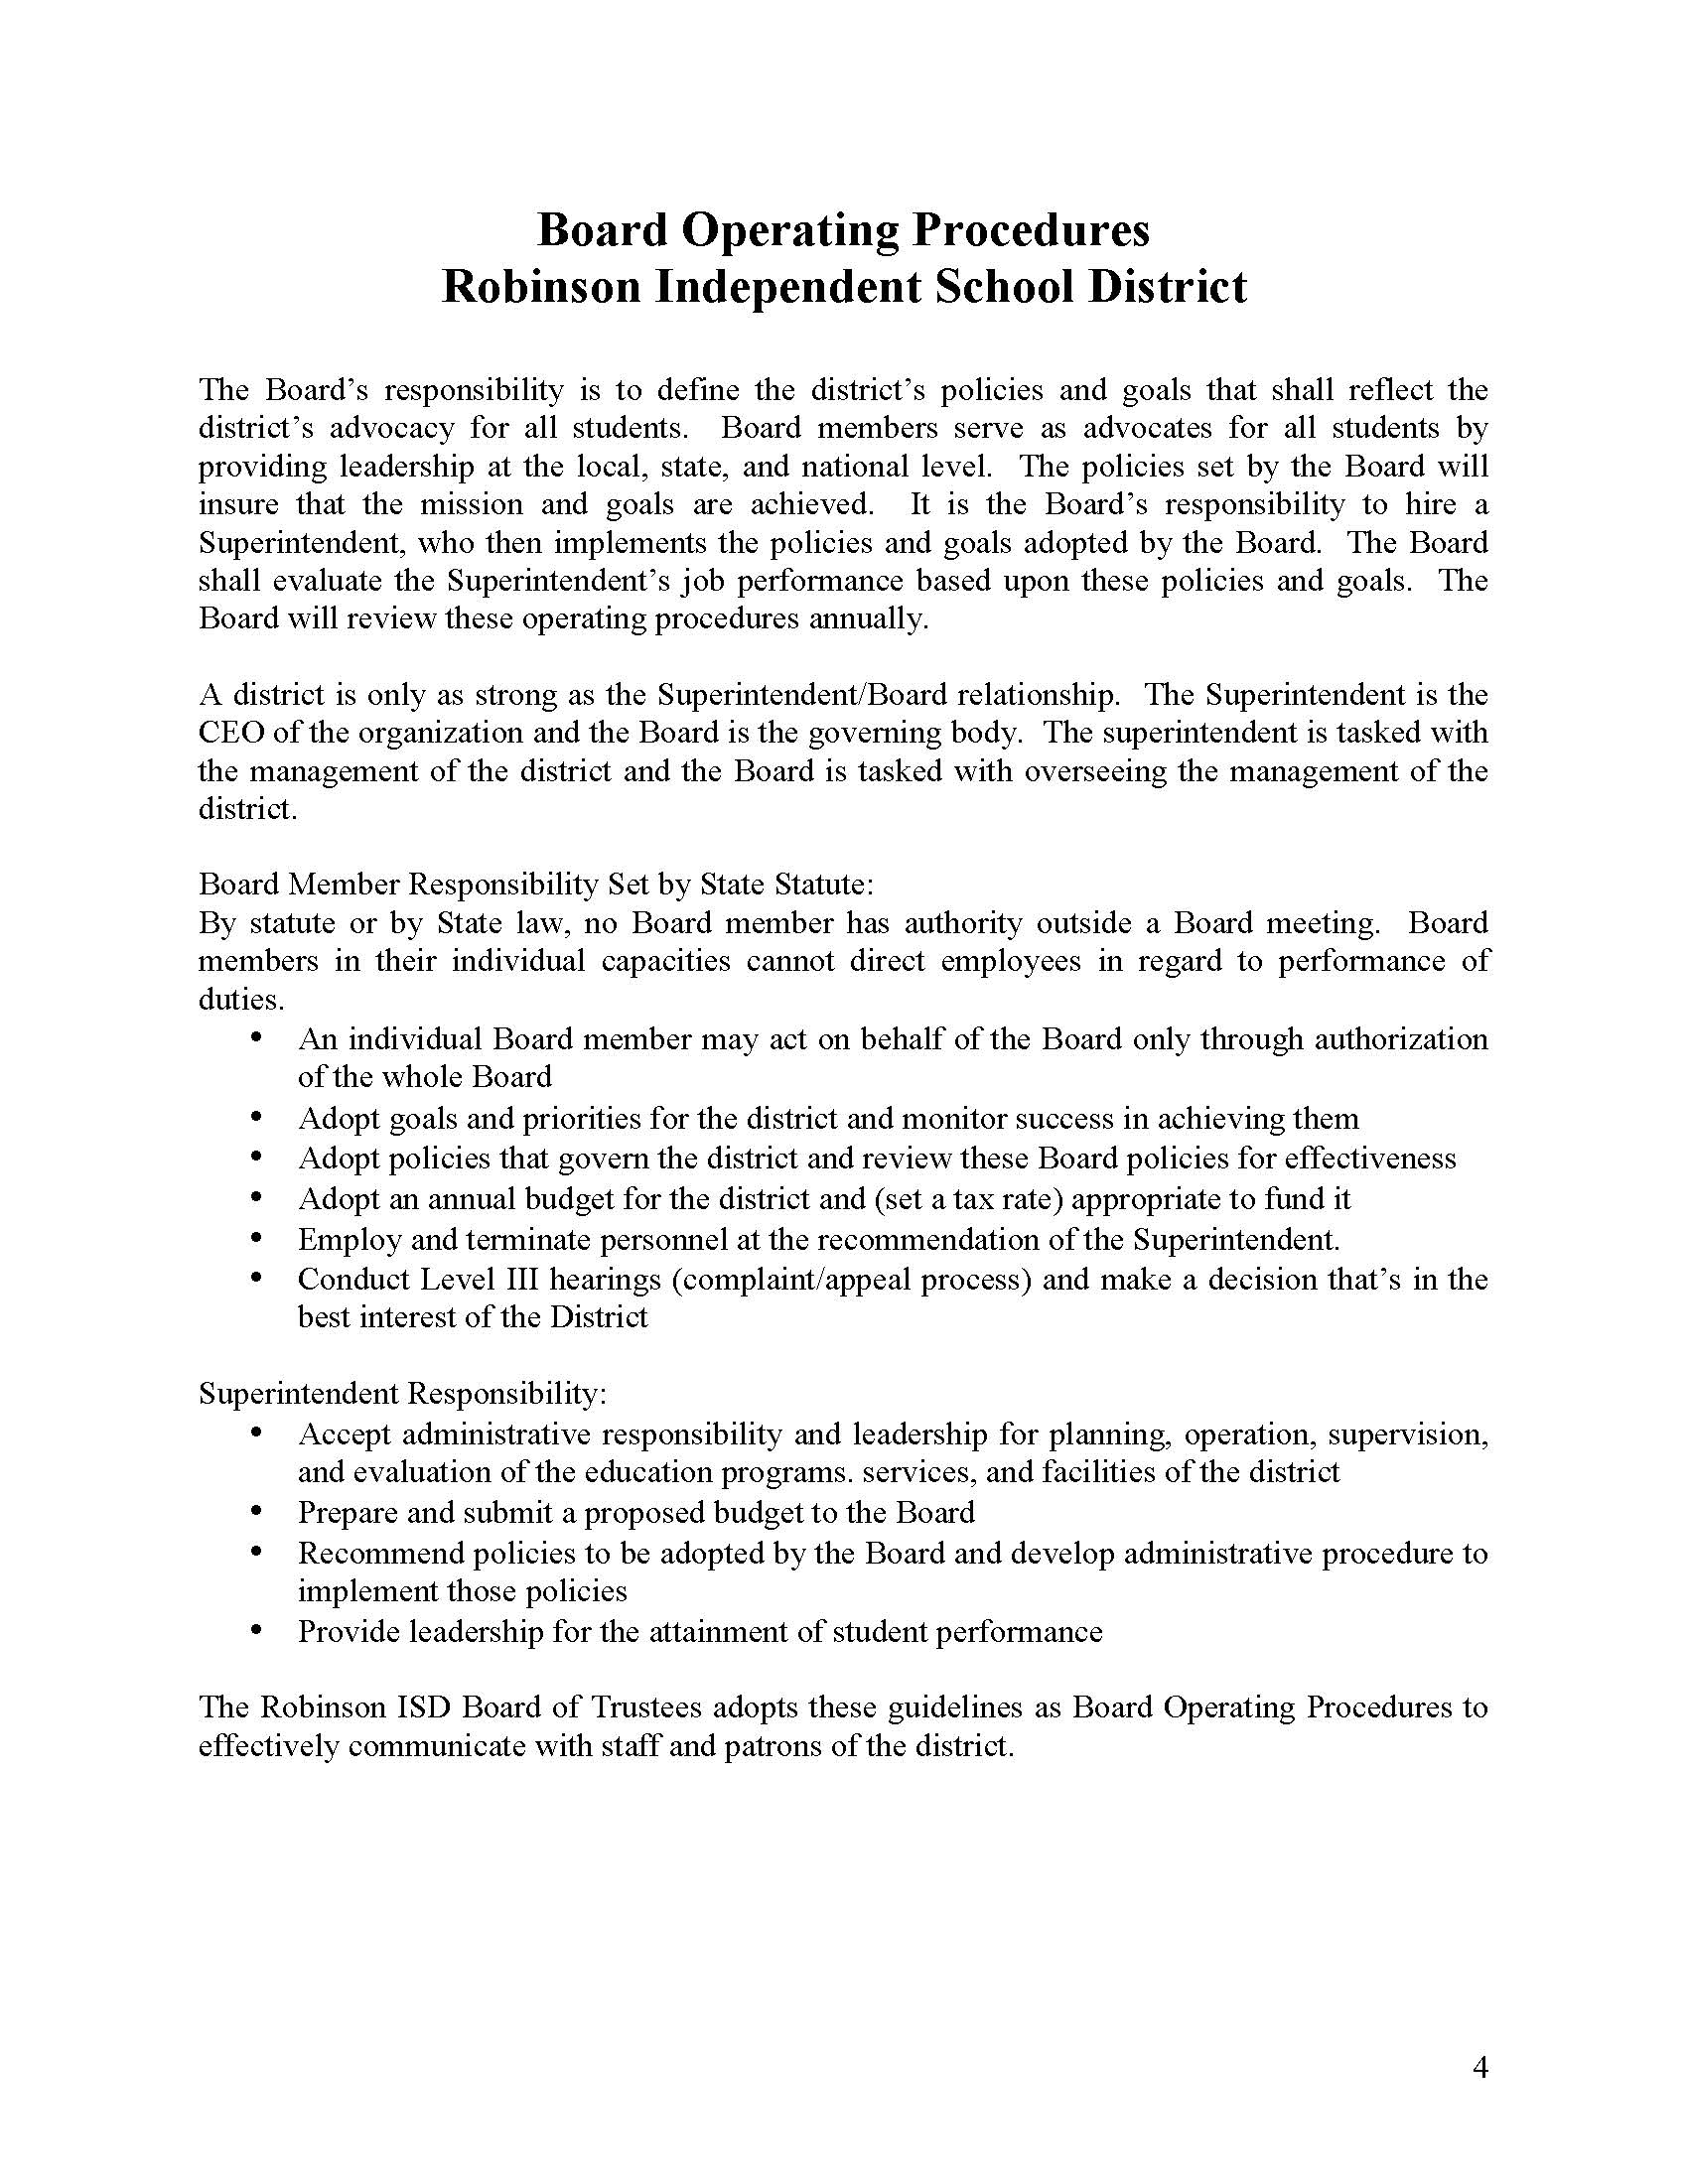 RISD Board Operating Procedures Page 4